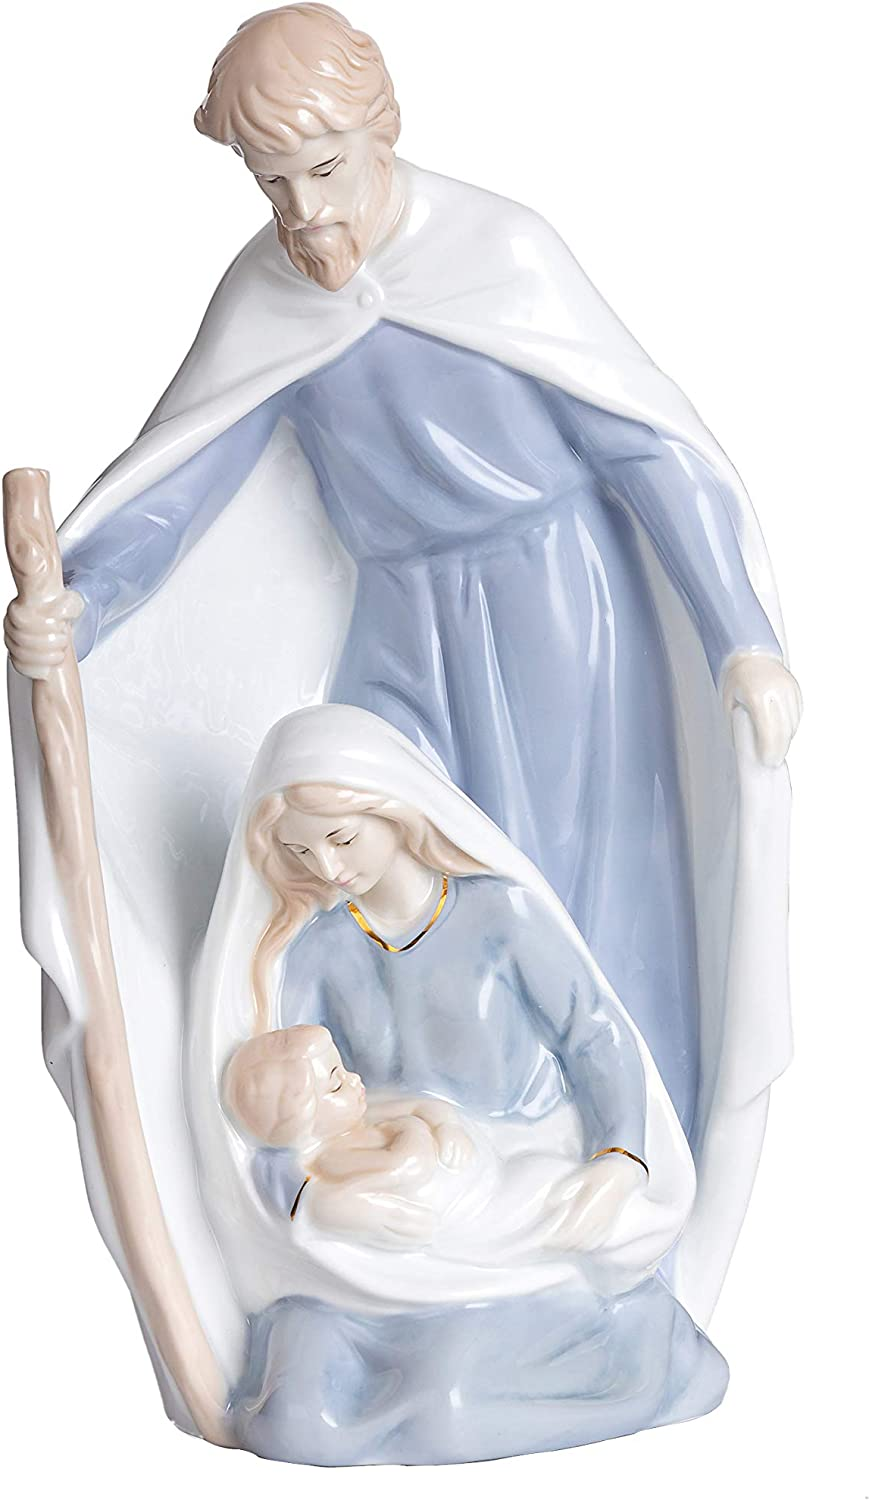 Catholic Holy Family Statue,11 inches Saint Joseph Statue, Ceramic Statue for Parents and Elders Who Love Religious Inspiration,Statuette Worth Collecting